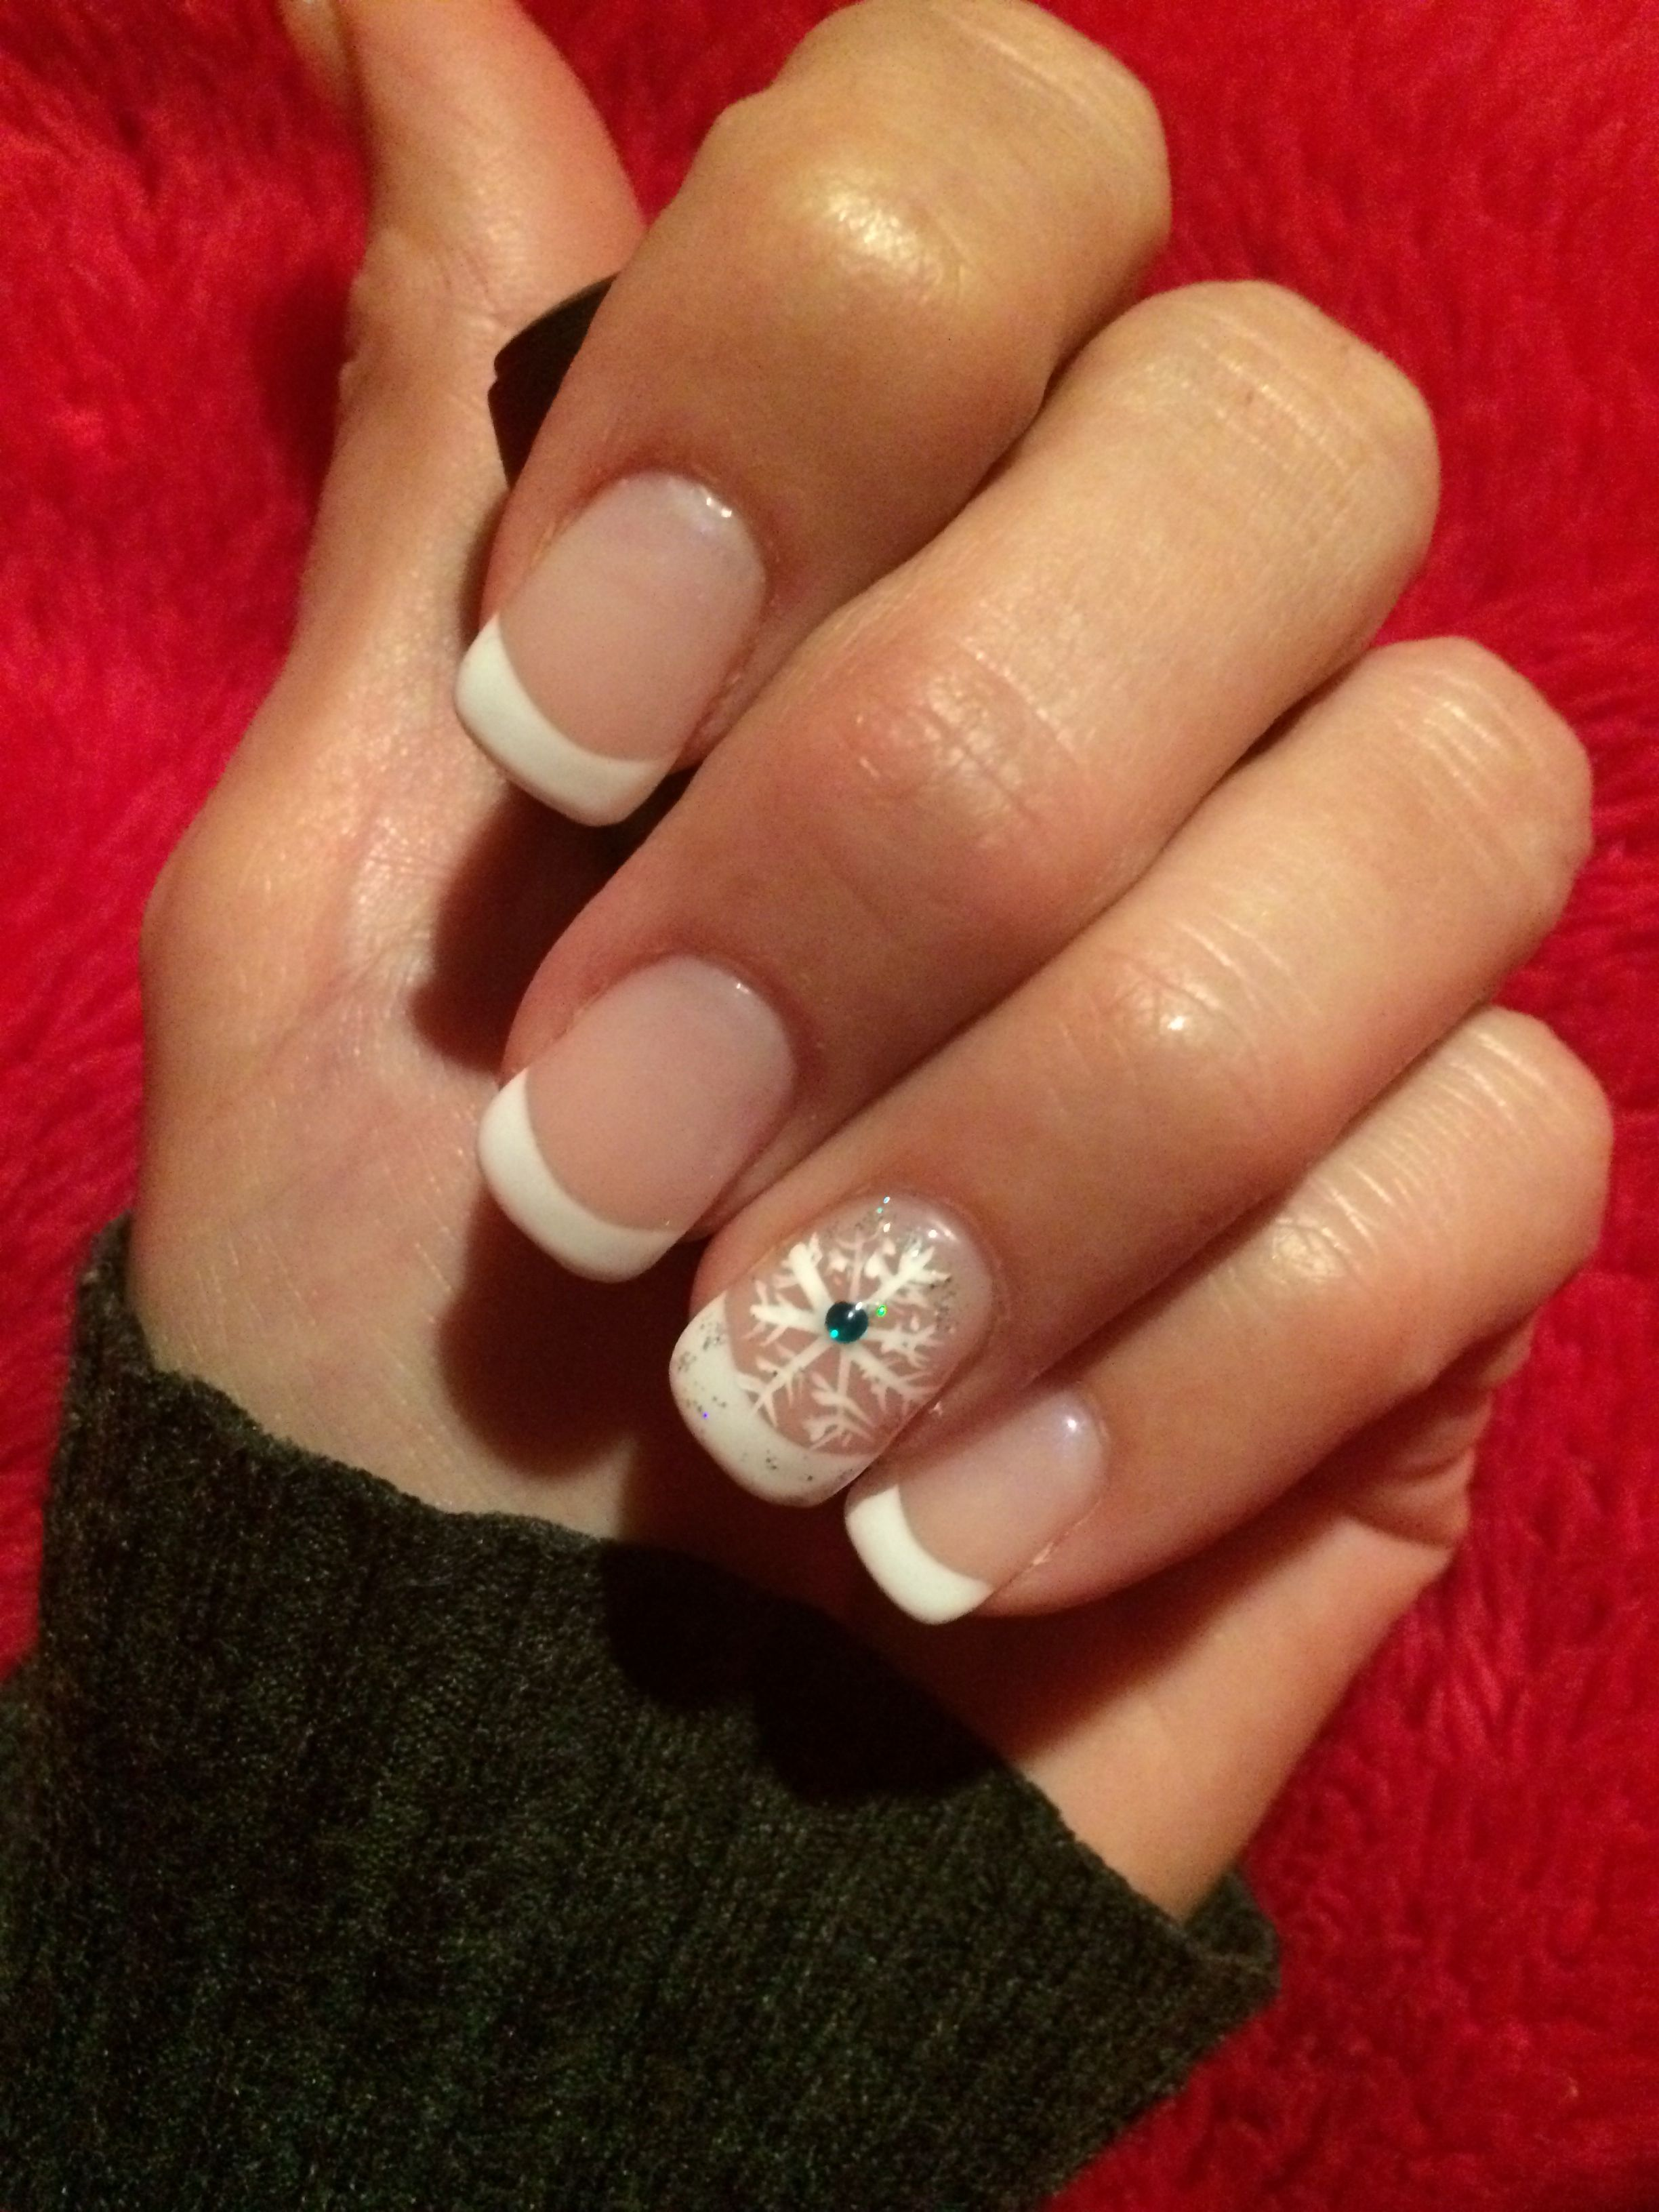 French manicure with snowflake design. | Beauty | Pinterest ...